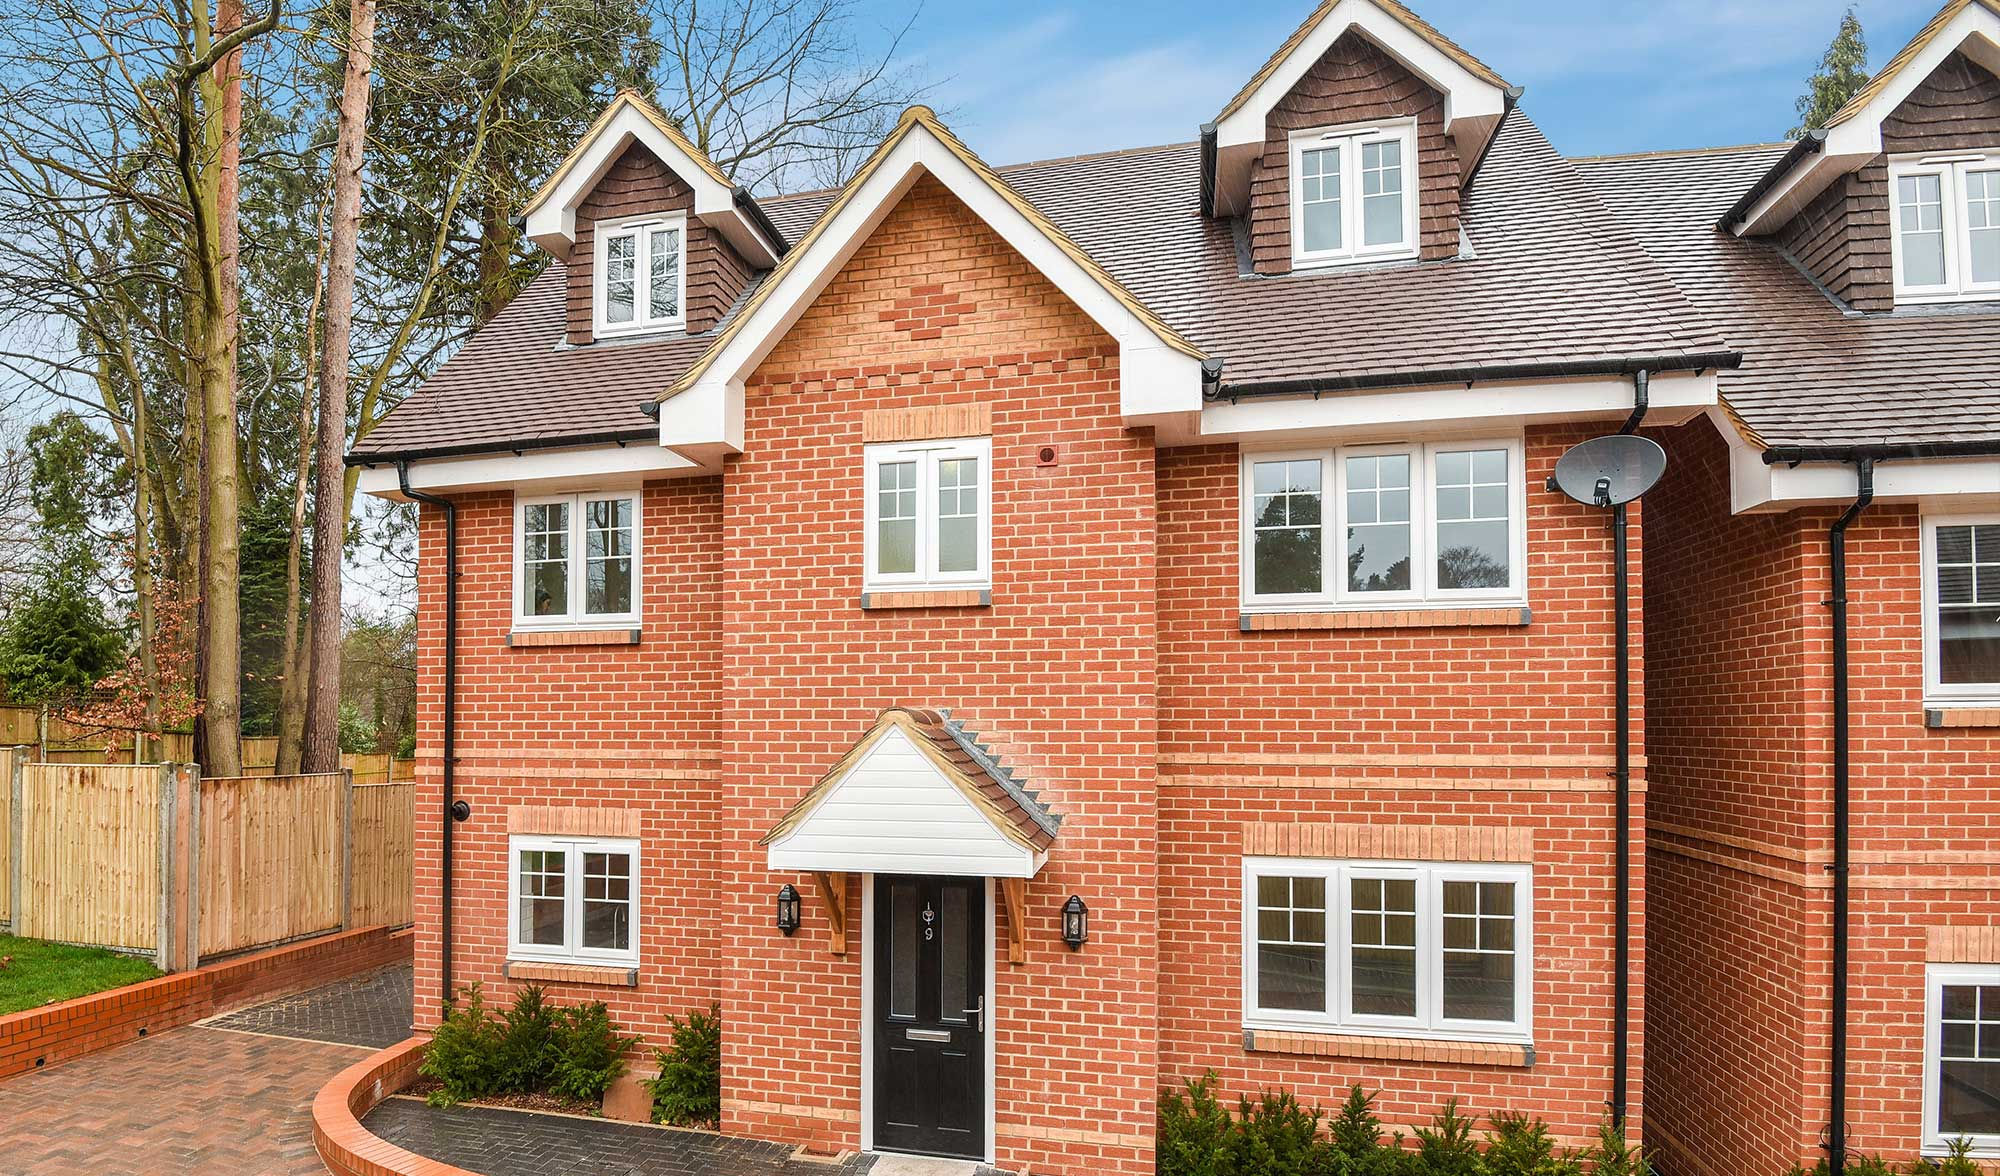 Broadhaven New Homes In Binfield Prospect Estate Agency Detached Full Brick Brand Home On Wiring House To Garage